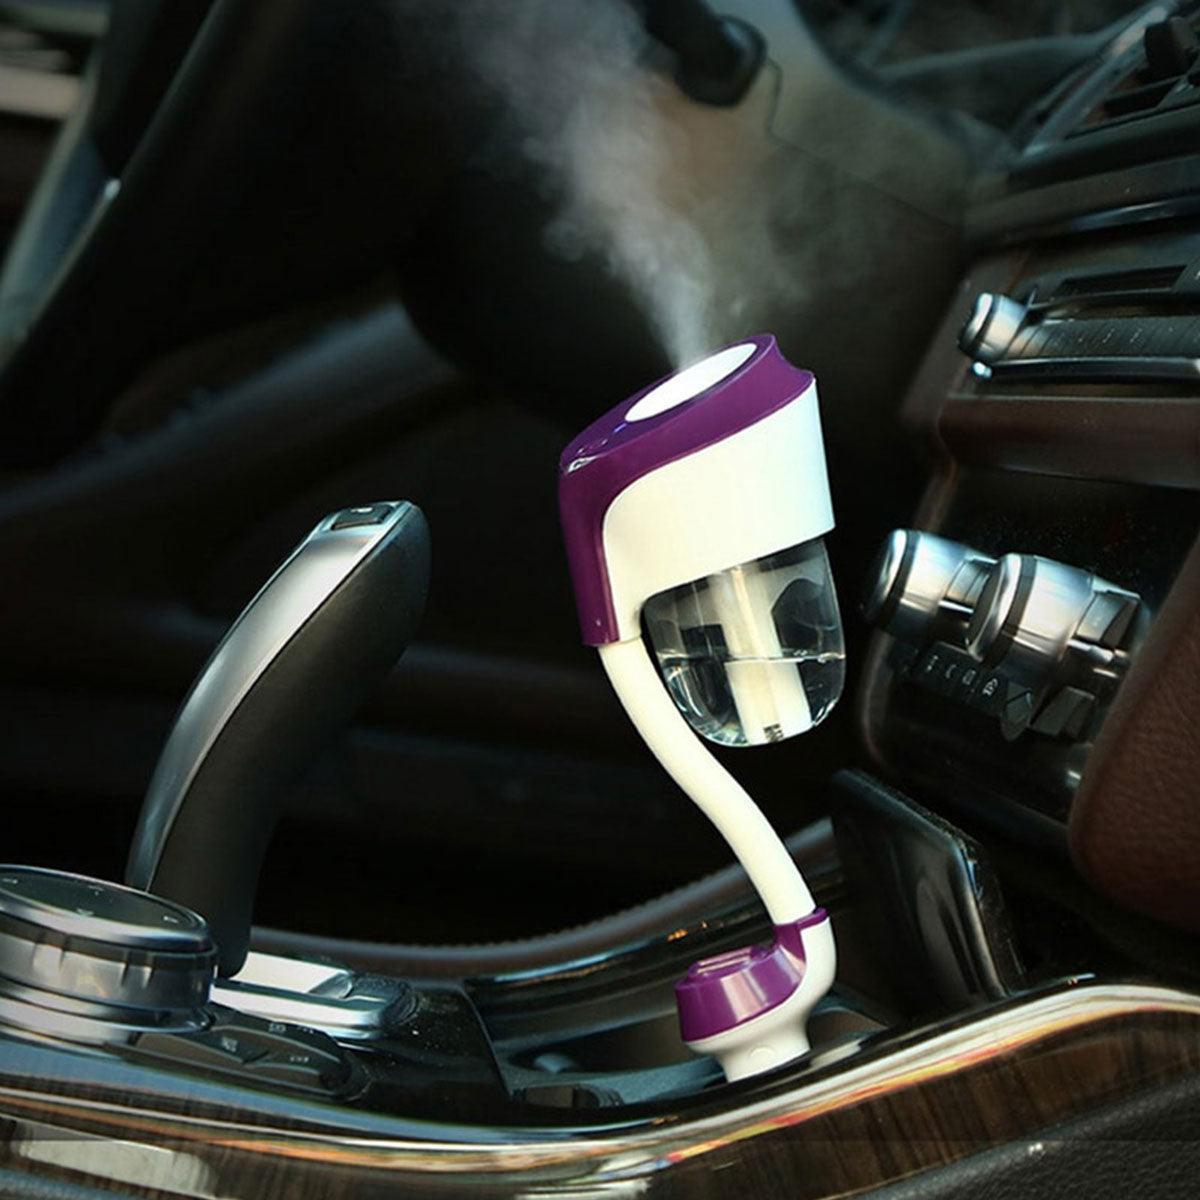 Auto Power Off Air Freshening Electric Car Diffuser with 2 USB Ports